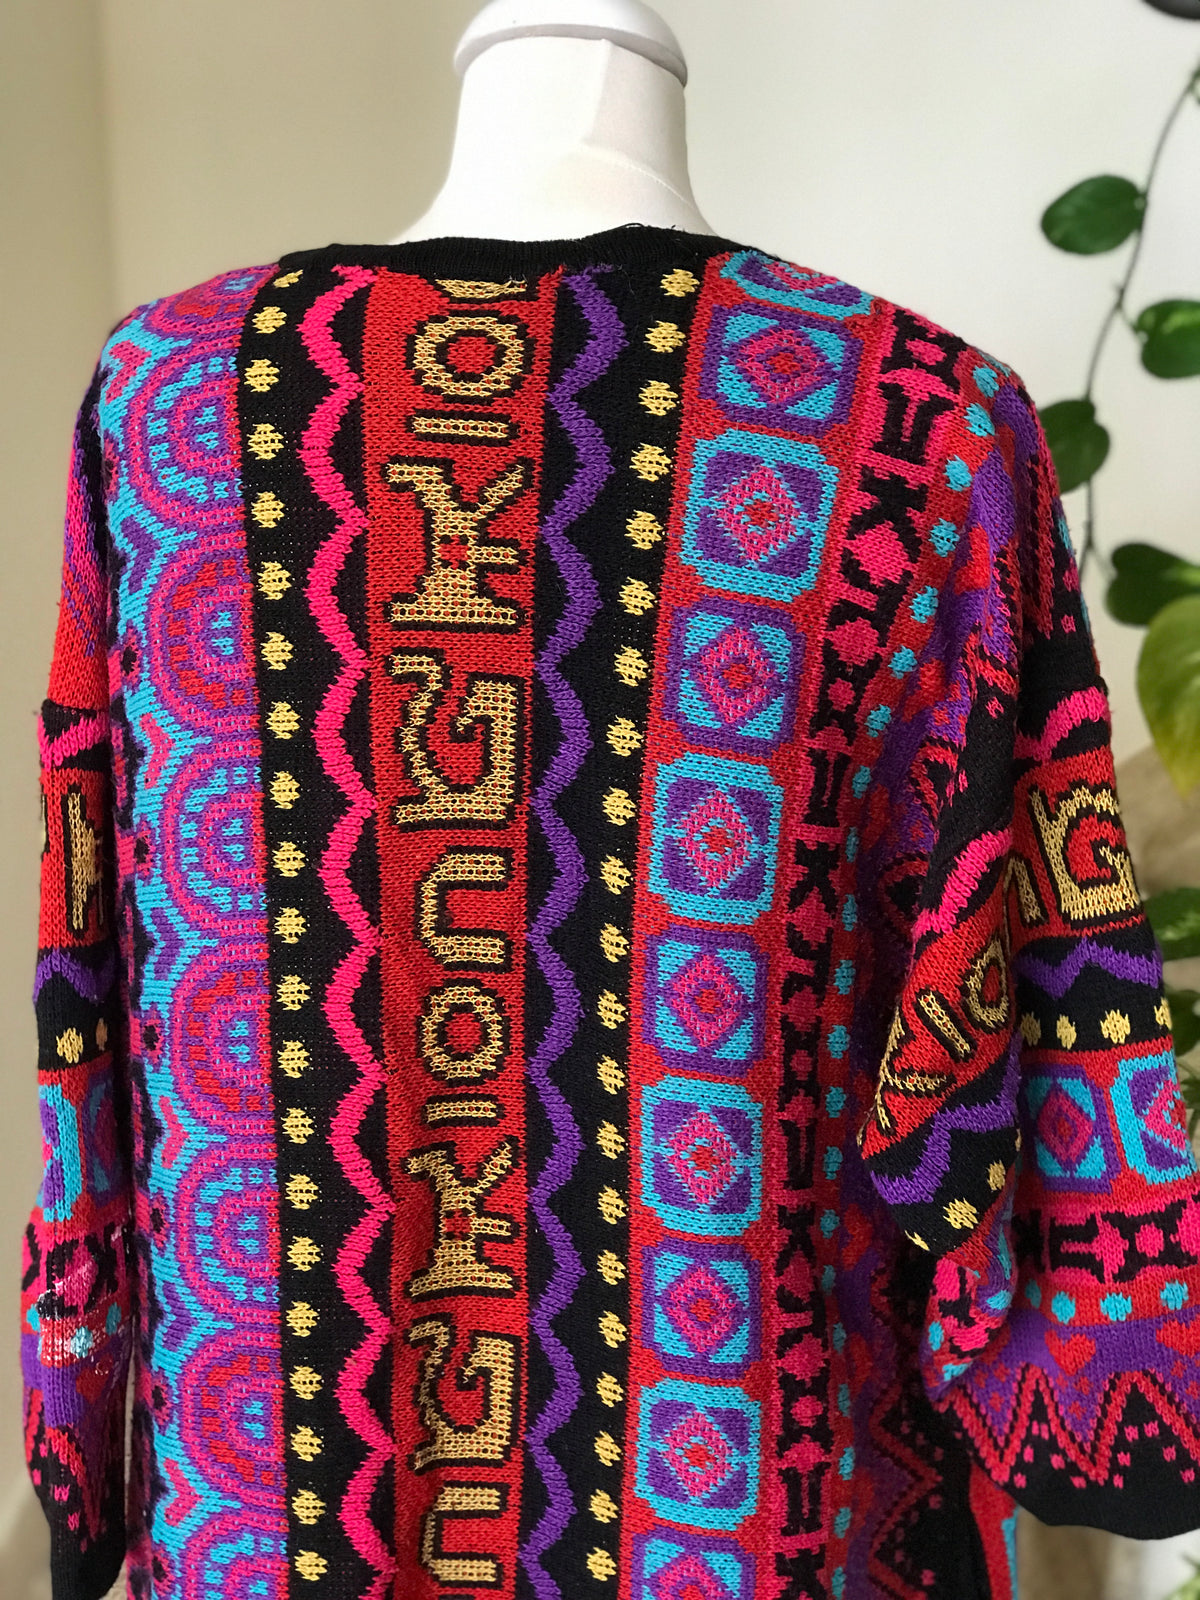 1980s Vintage Pop Art Patterned Cardigan Duster